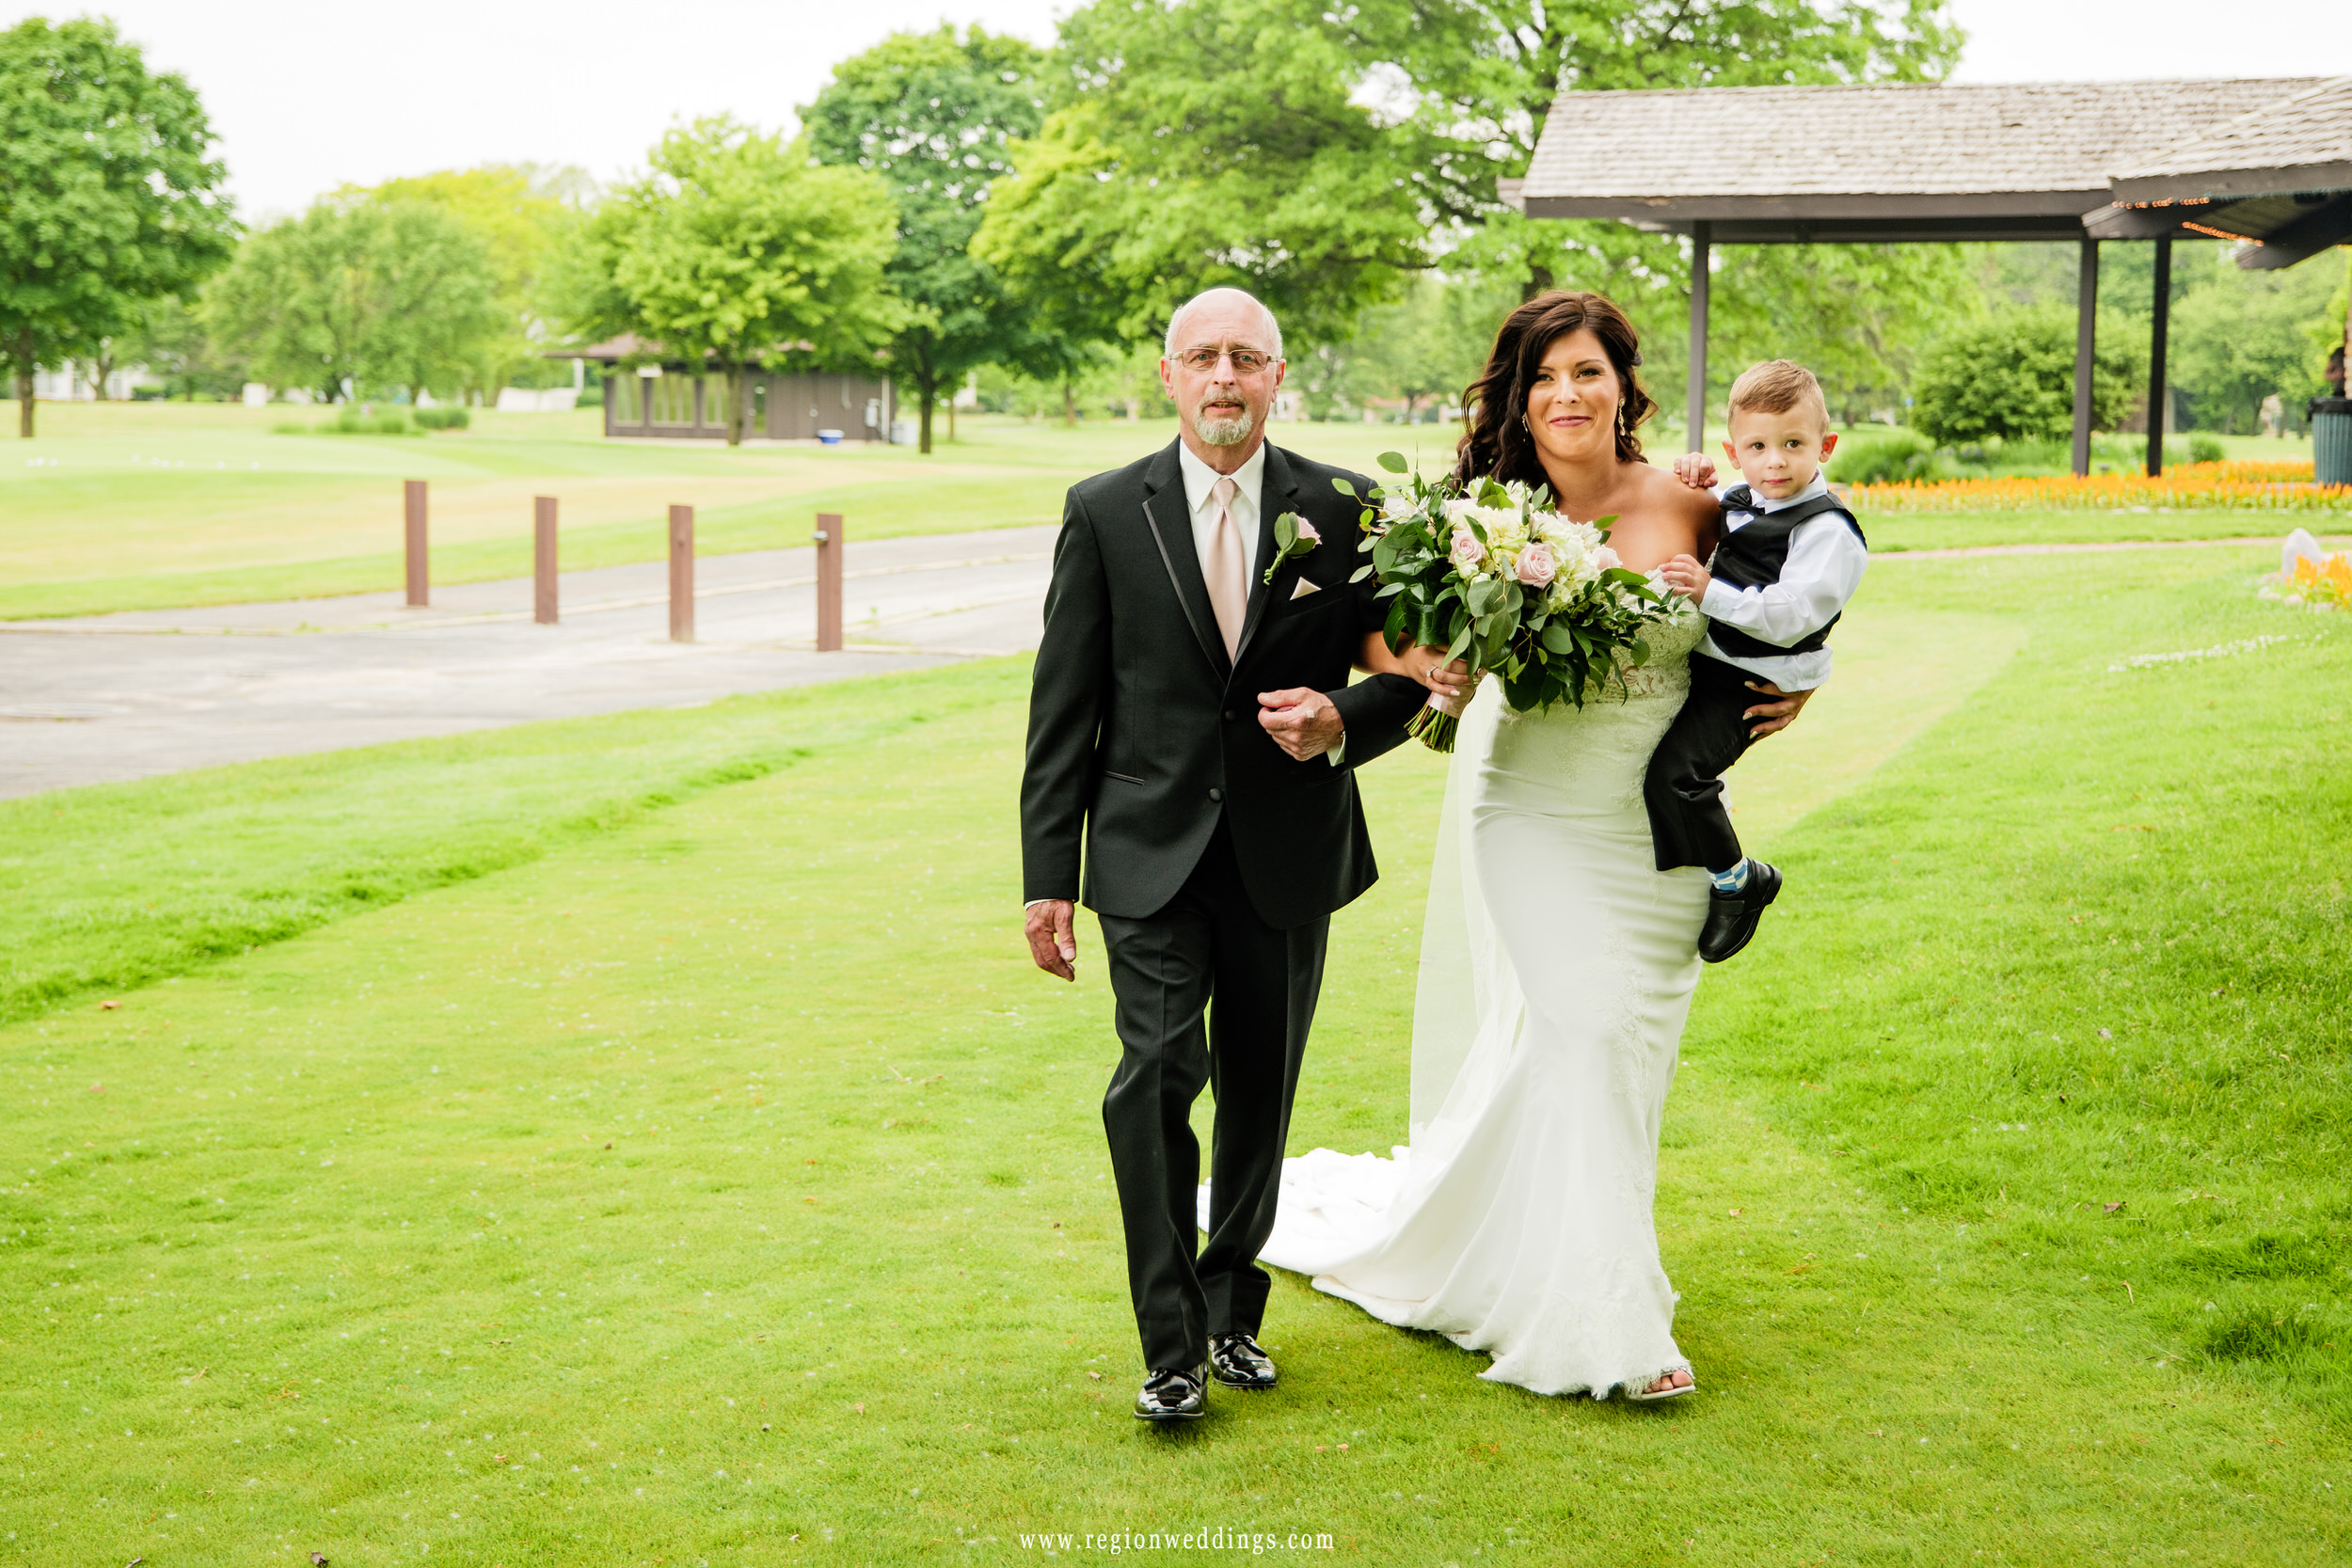 The bride makes her ceremony entrance alongside her father and son.